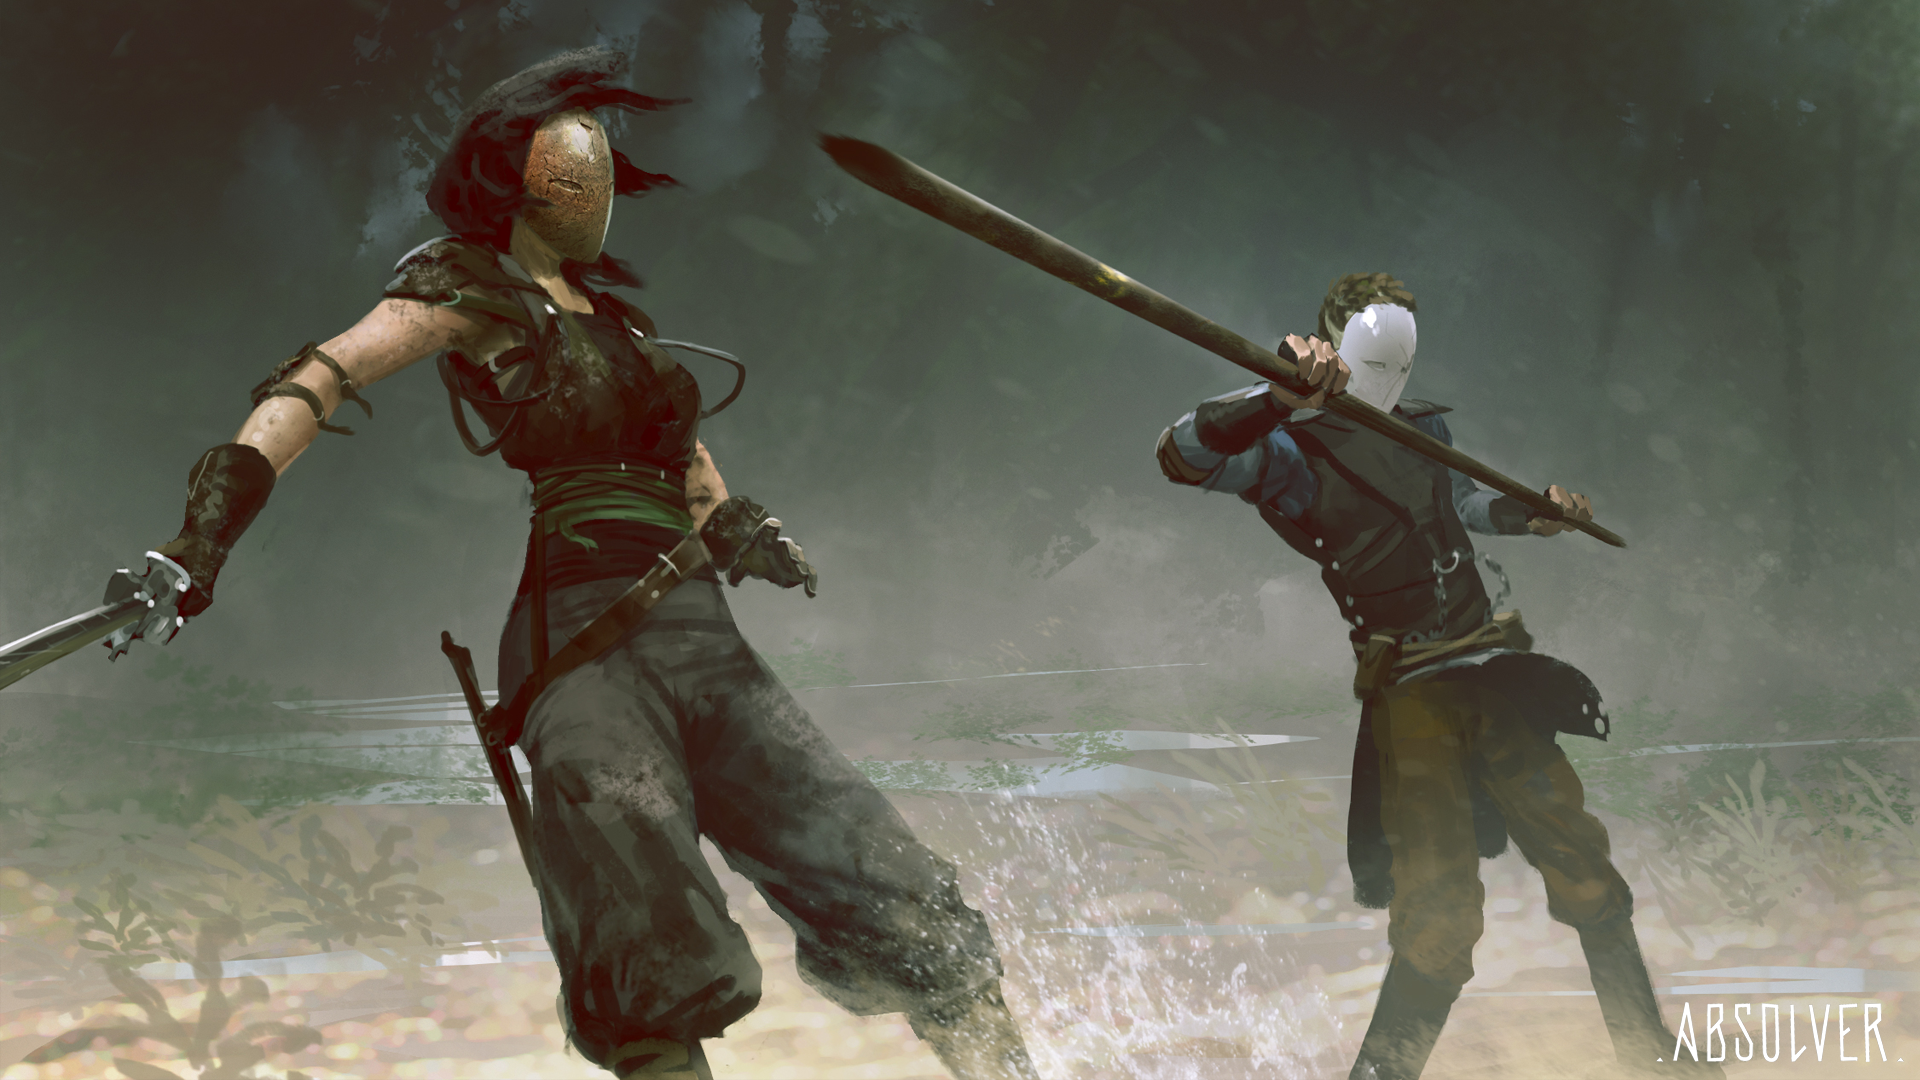 New Absolver Video Highlights Weapons and Powers